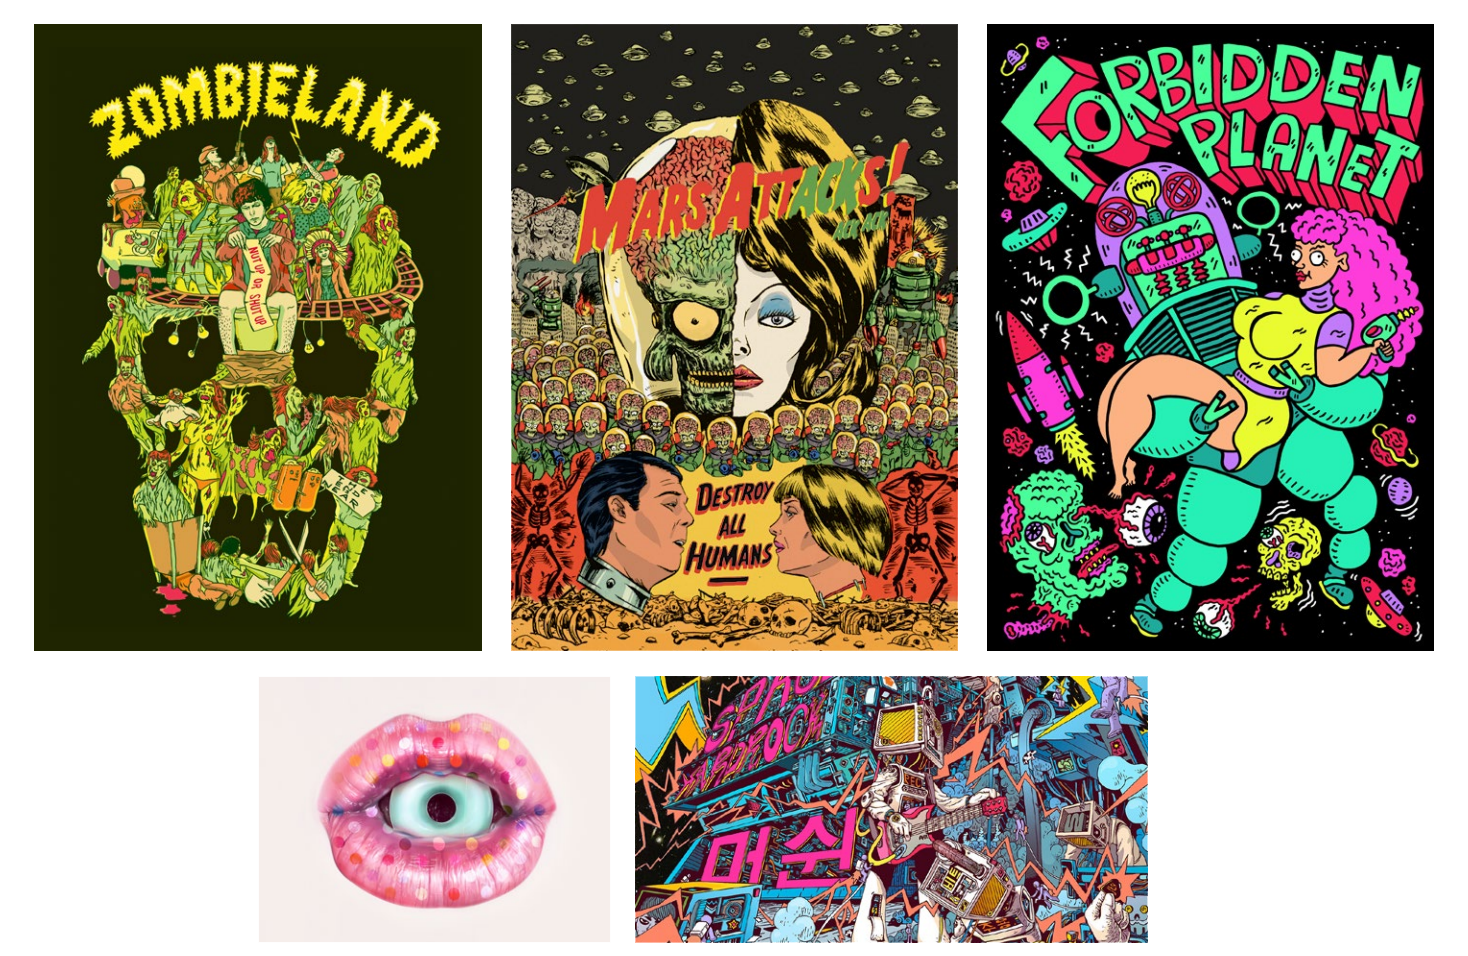 Artworks by (Clockwise from top left) Mightyellow, Russell Ong, Russell Taysom, Mr Misang, Kittozutto